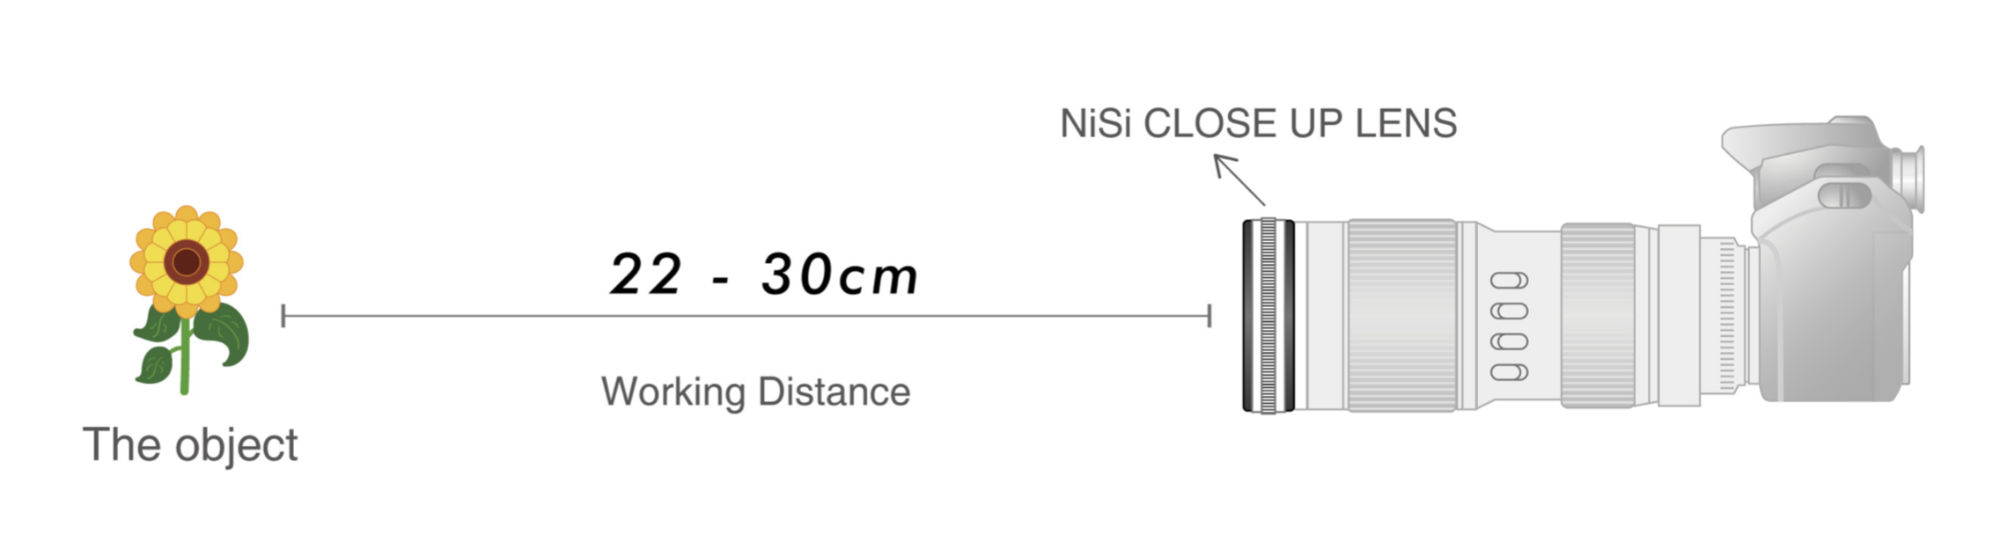 NiSi Close Up Lens Kit NC 77mm (with 67 and 72mm adaptors) - Working Distance